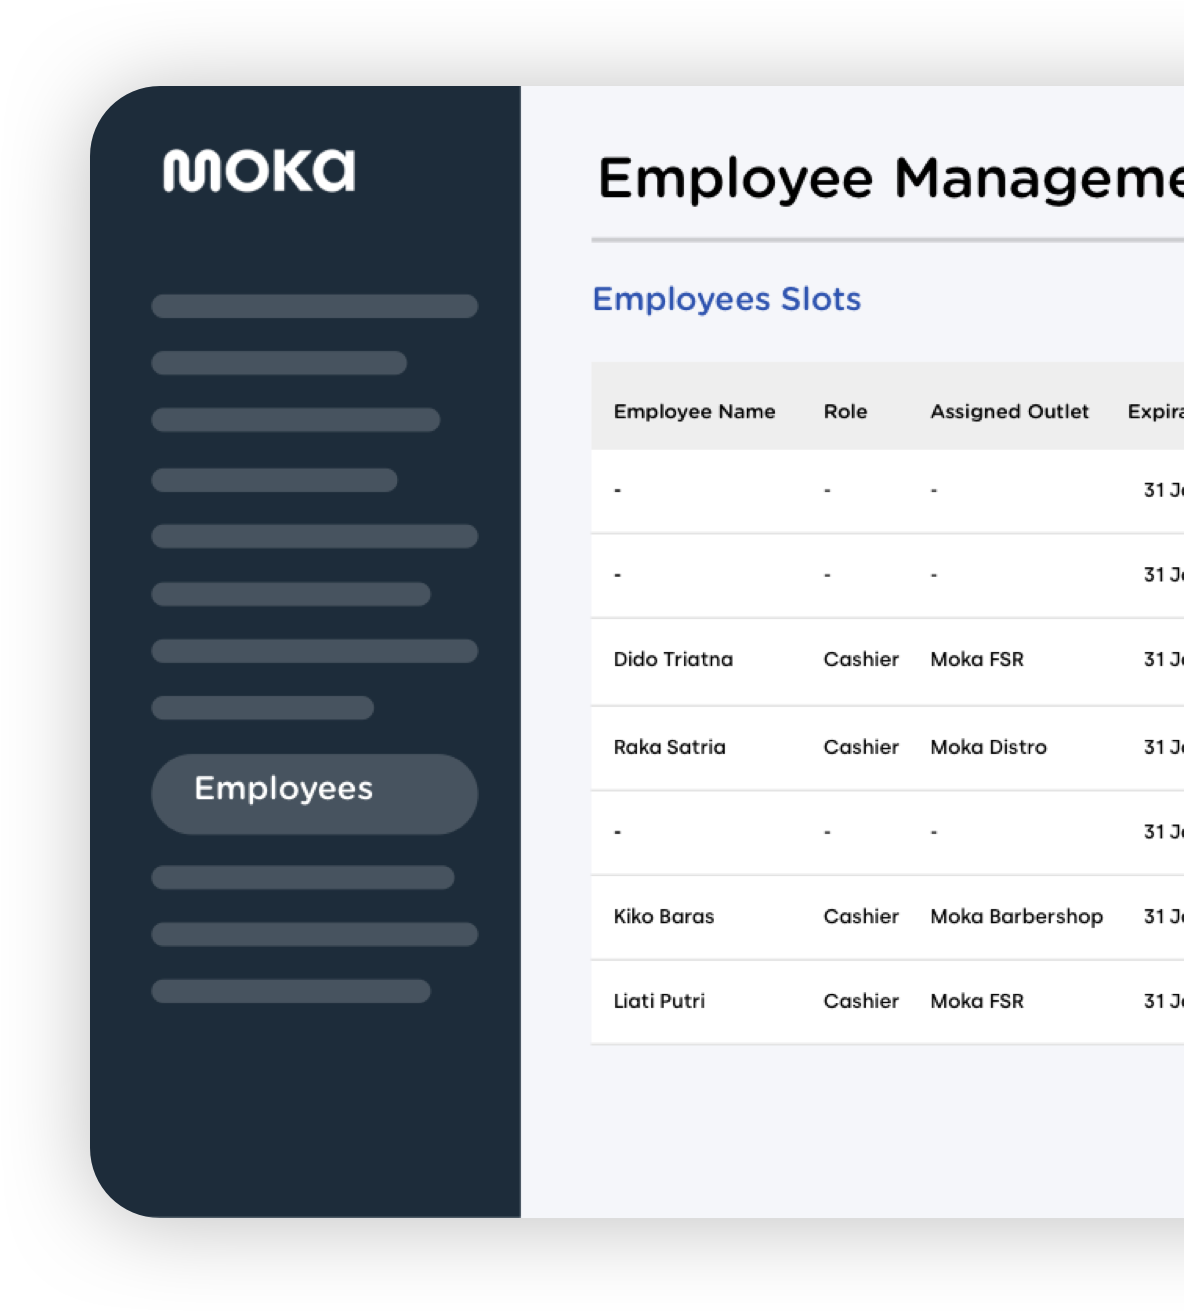 Moka's point of sale application secures and manages employee data, as well as to monitor the work shift of employees on duty